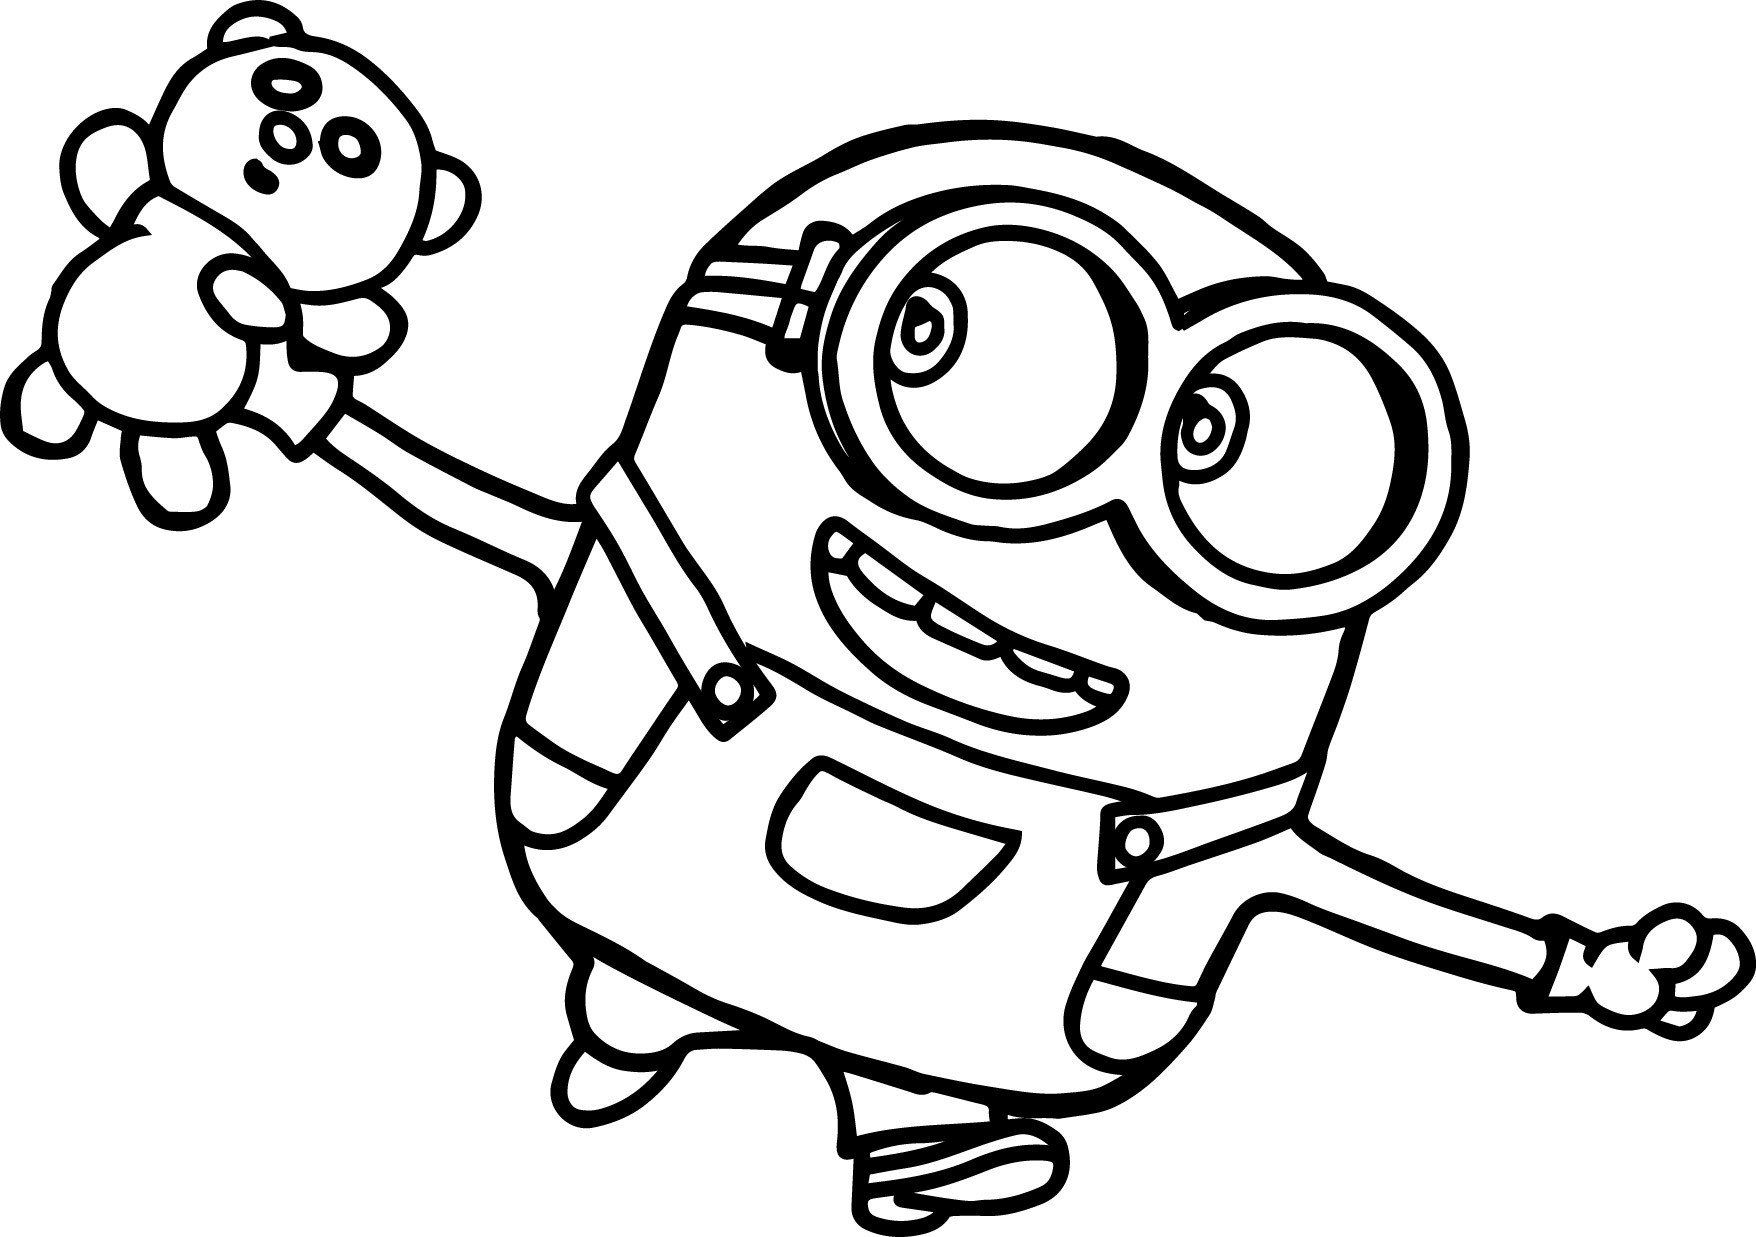 Despicable Me Coloring Pages Fresh Despicable Me Coloring Pages